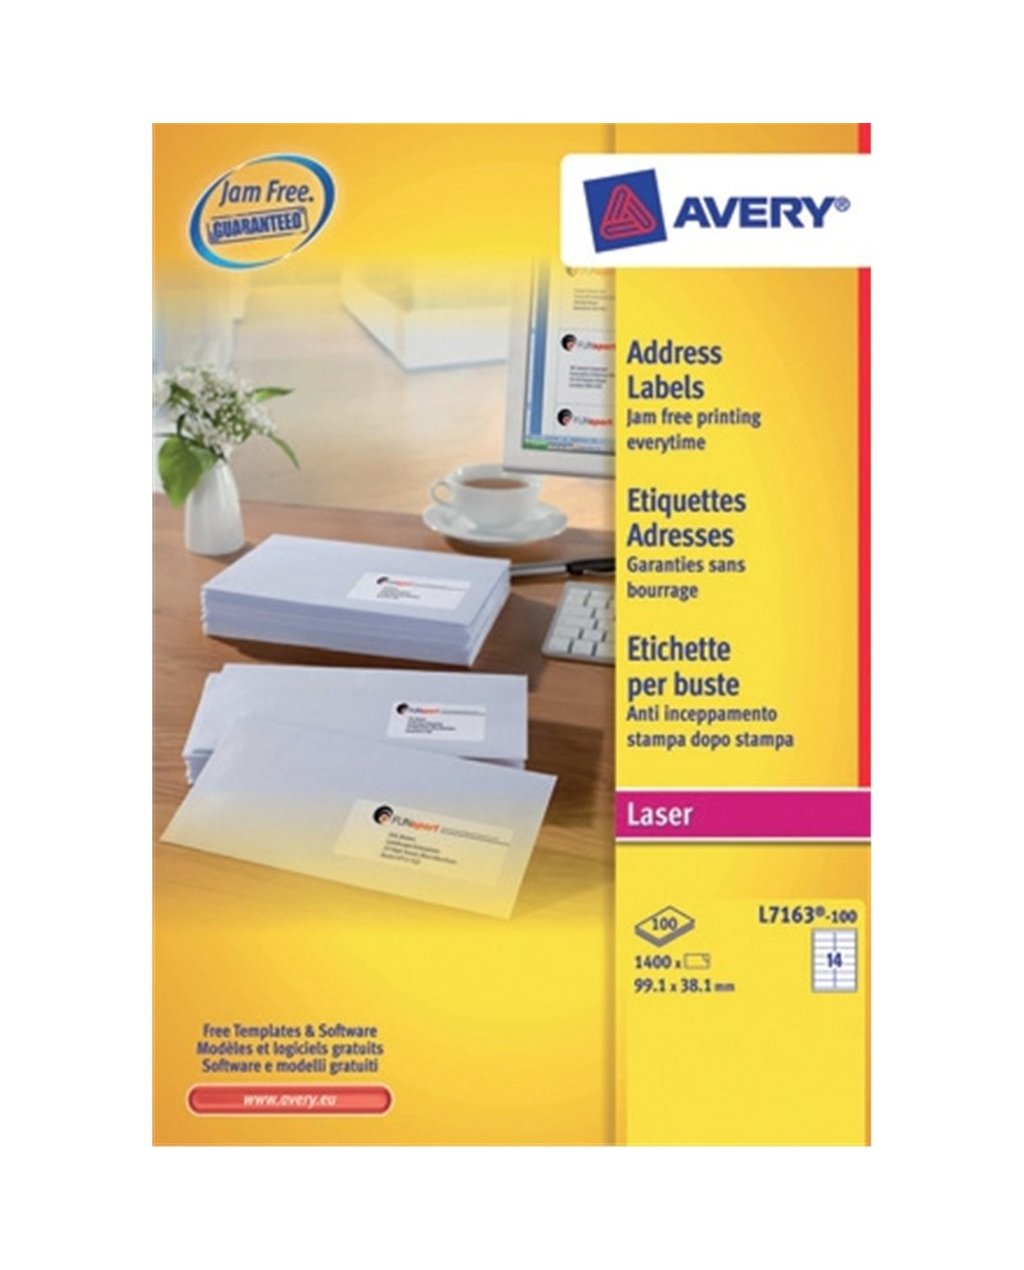 Avery Laser Labels - Jam-Free L7169, 139 x 99.1mm